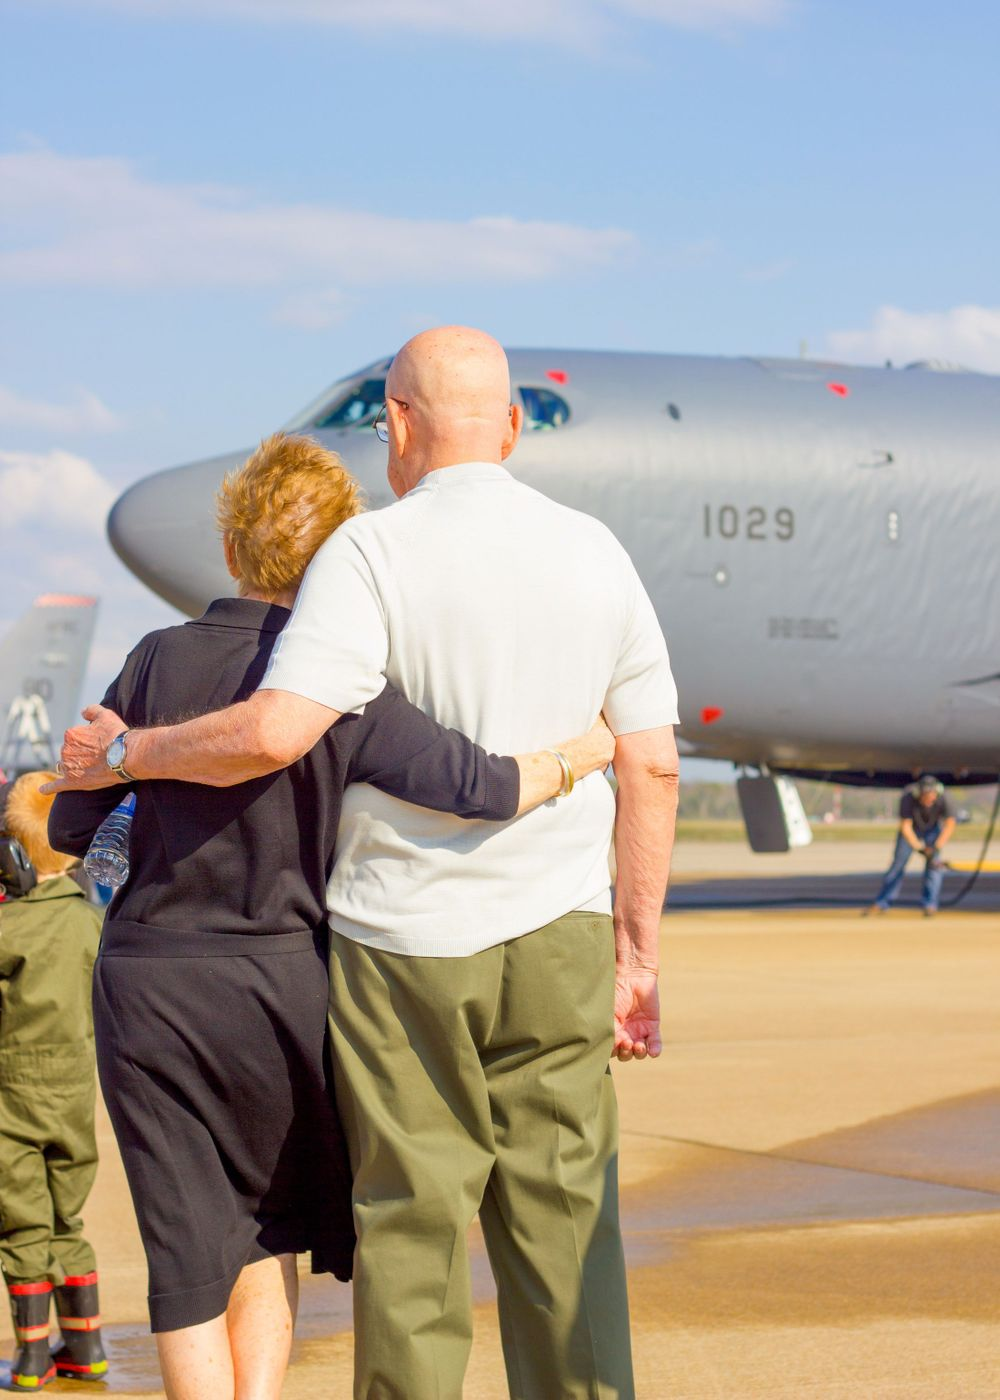 B52 military retirement couple looking with pride at son's retirement BUFF flight line